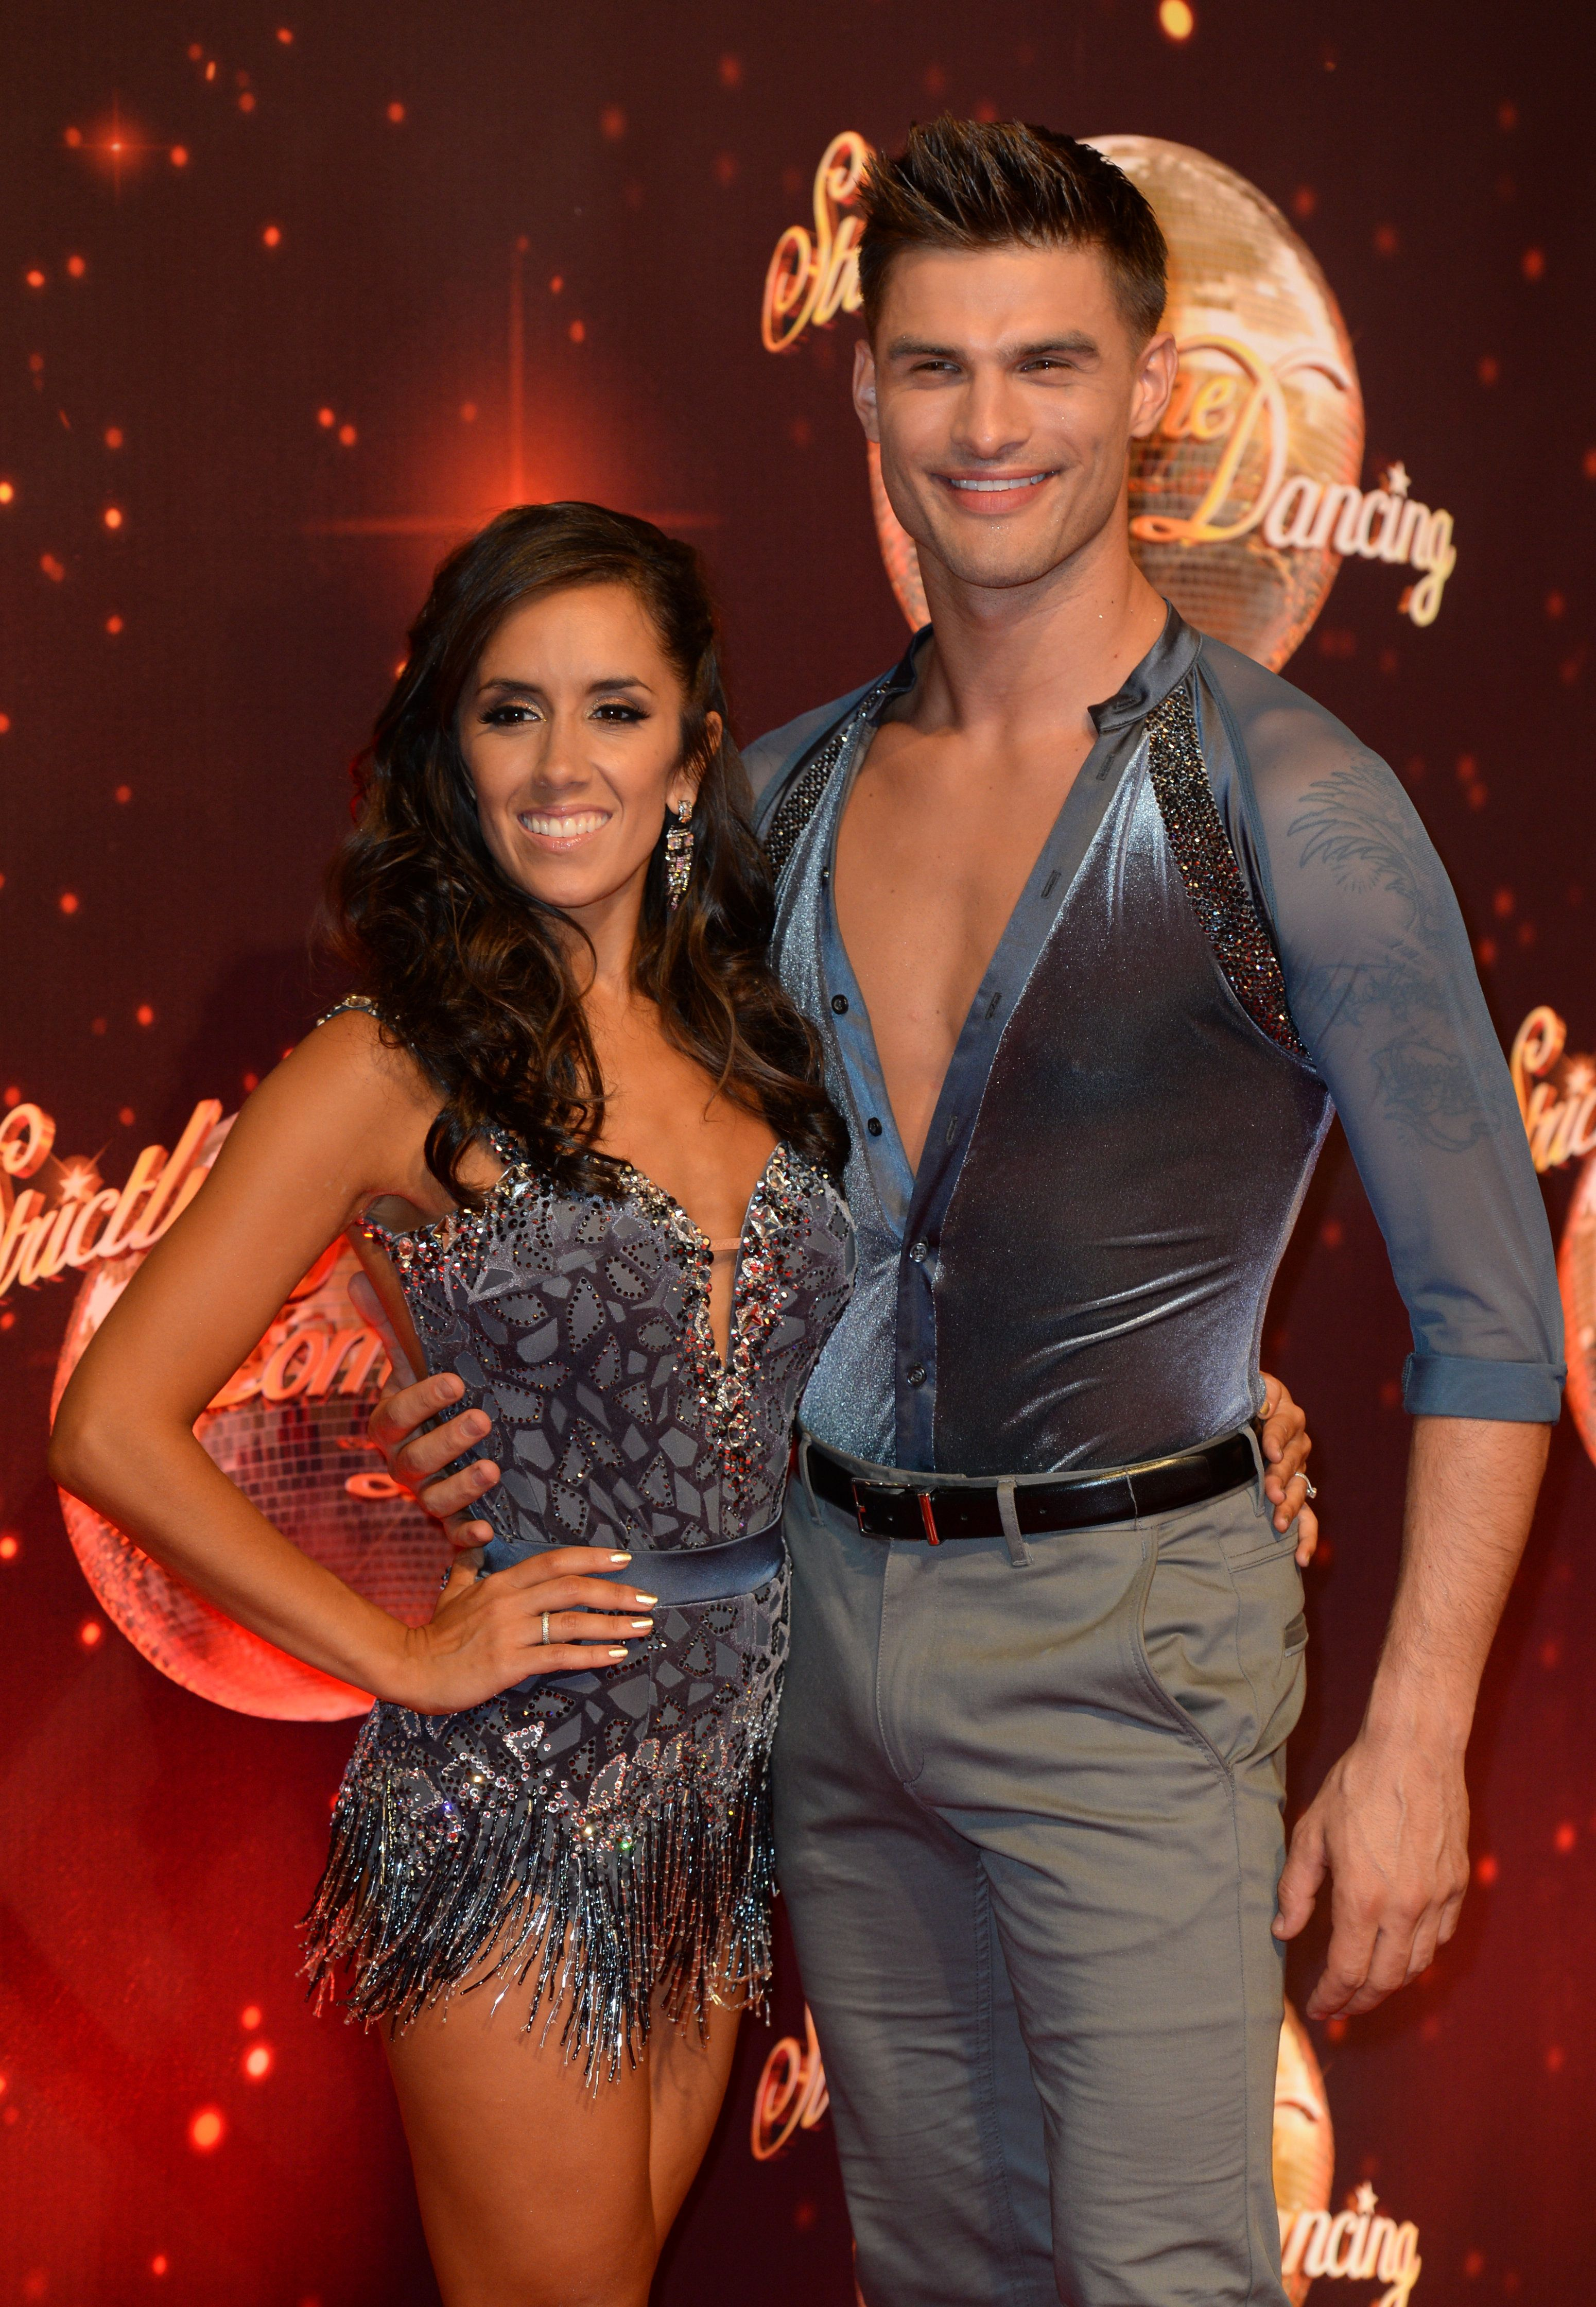 'Strictly Come Dancing' Pros Janette Marara And Aljaz Skorjanec Wed In Star-Studded